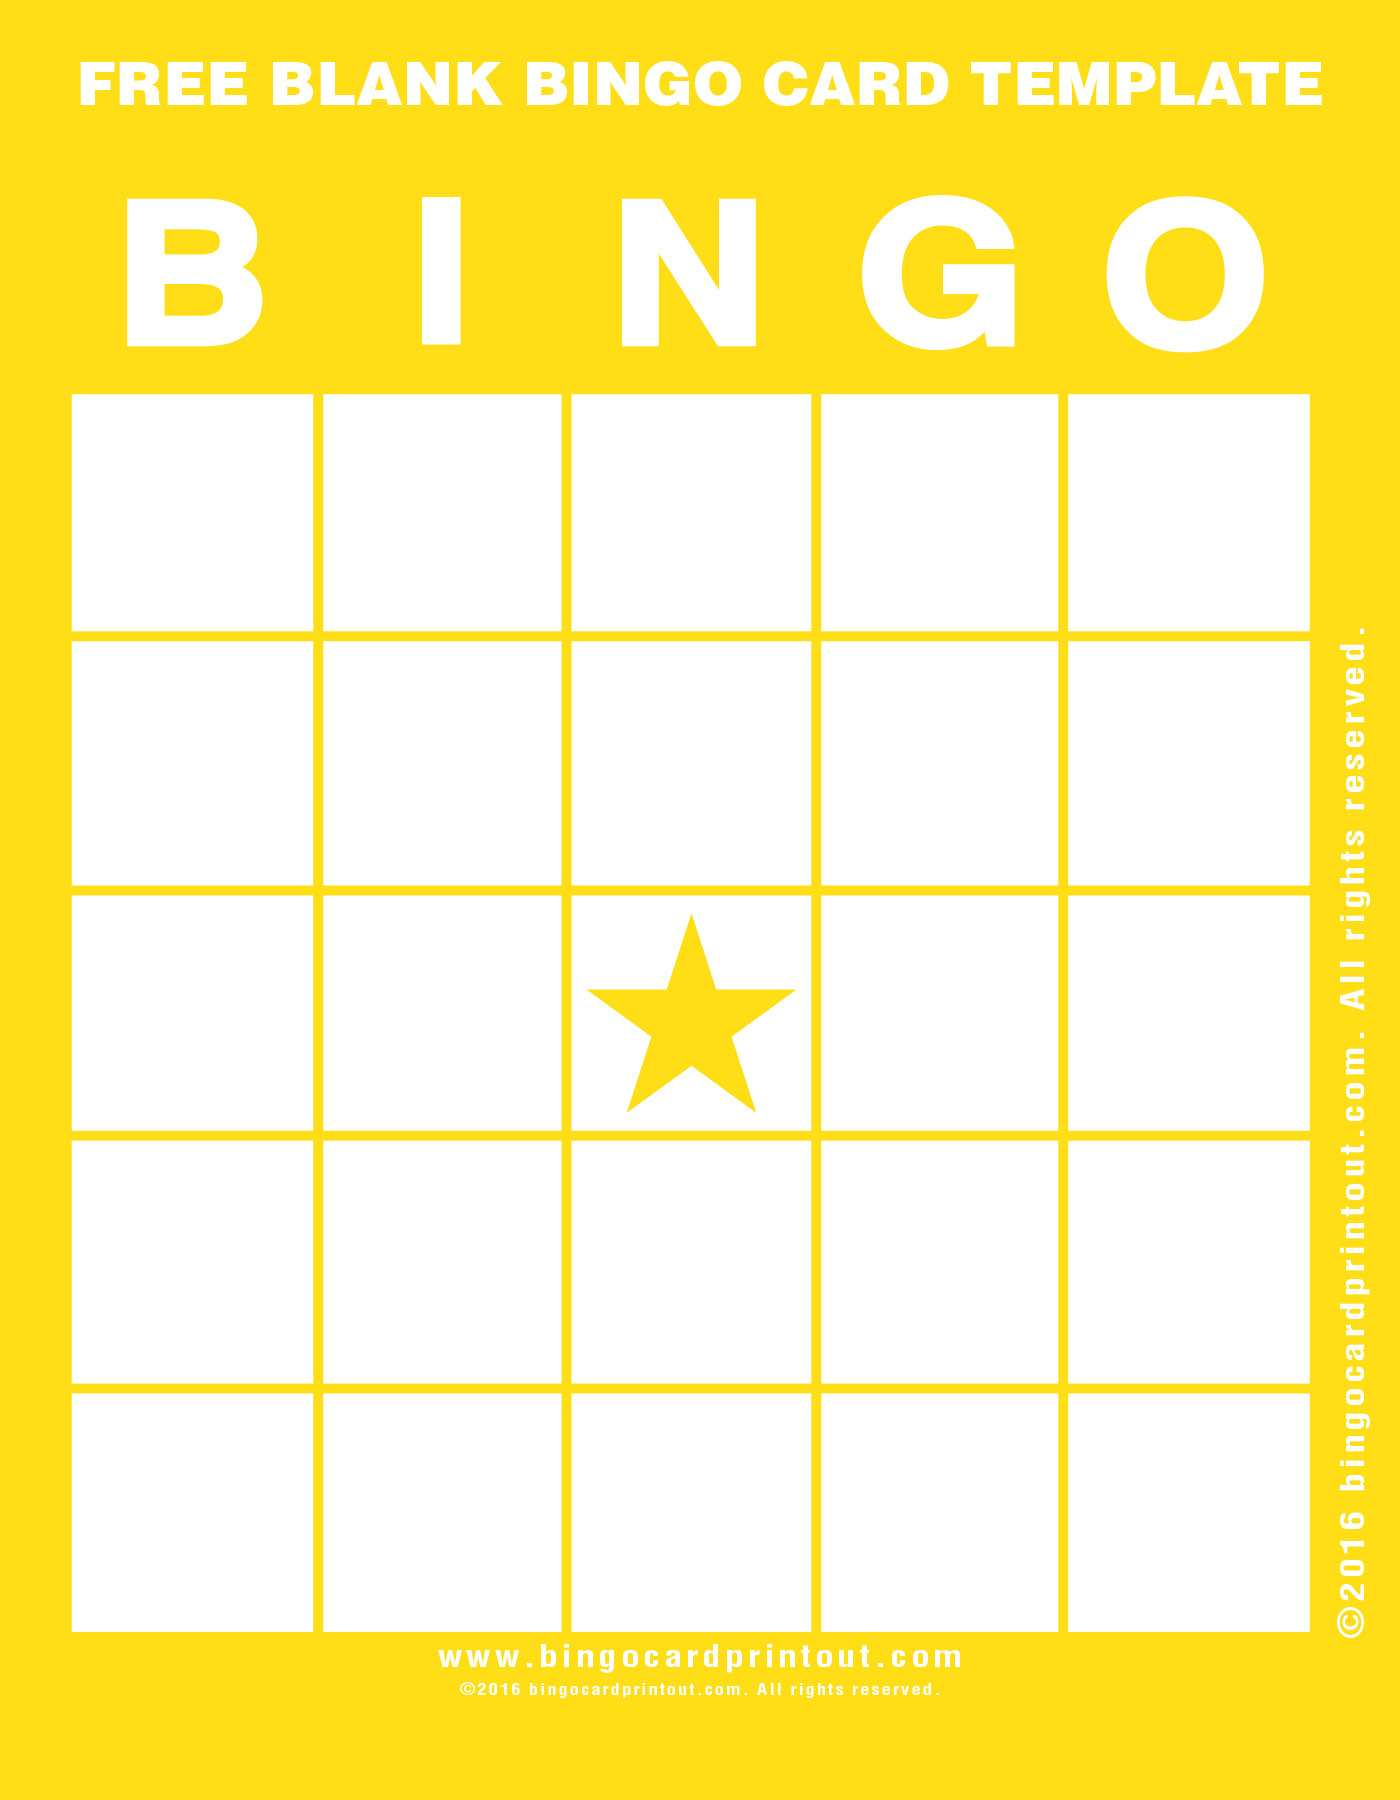 21 The Best Bingo Card Template Word Document in Photoshop with Throughout Bingo Card Template Word